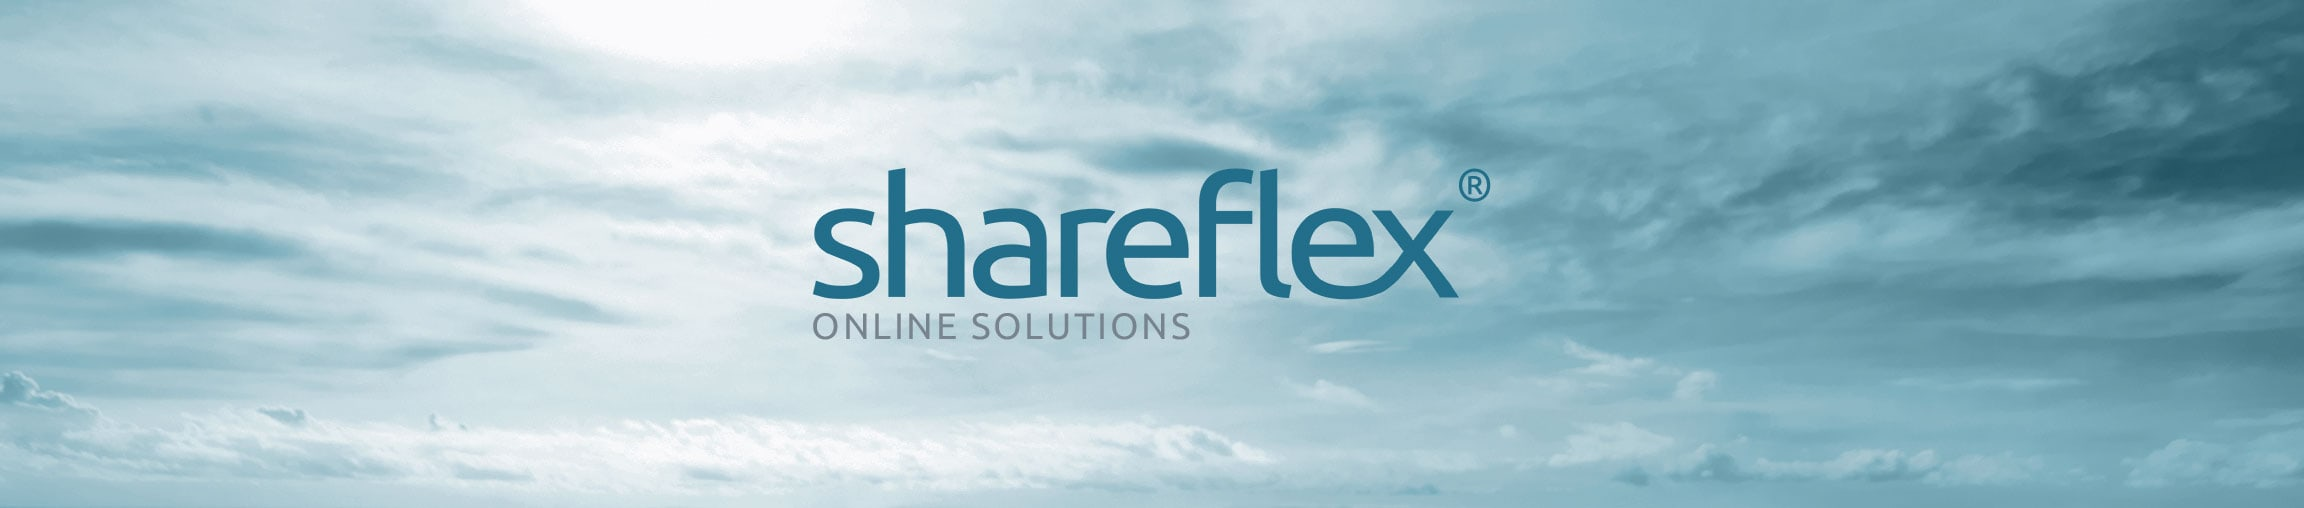 Sunny sky with clouds and the Shareflex Online logo